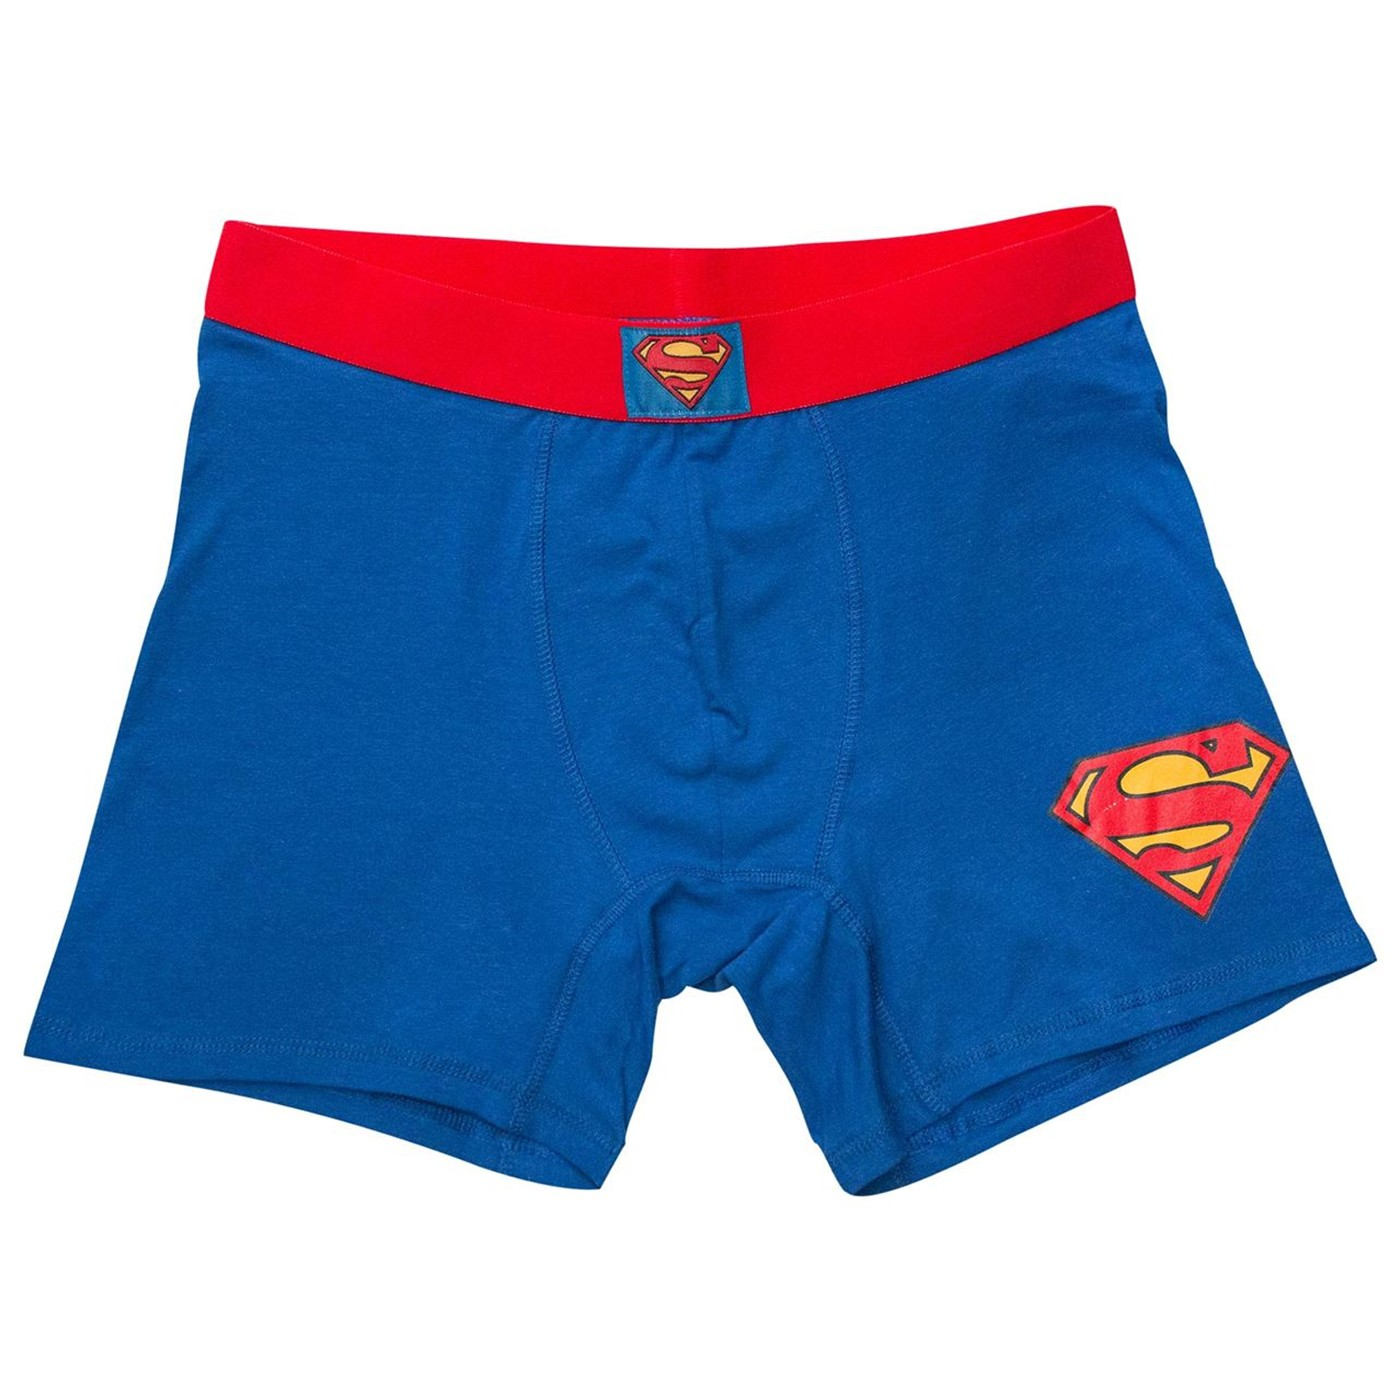 Superman Classic Men's Underwear Boxer Briefs